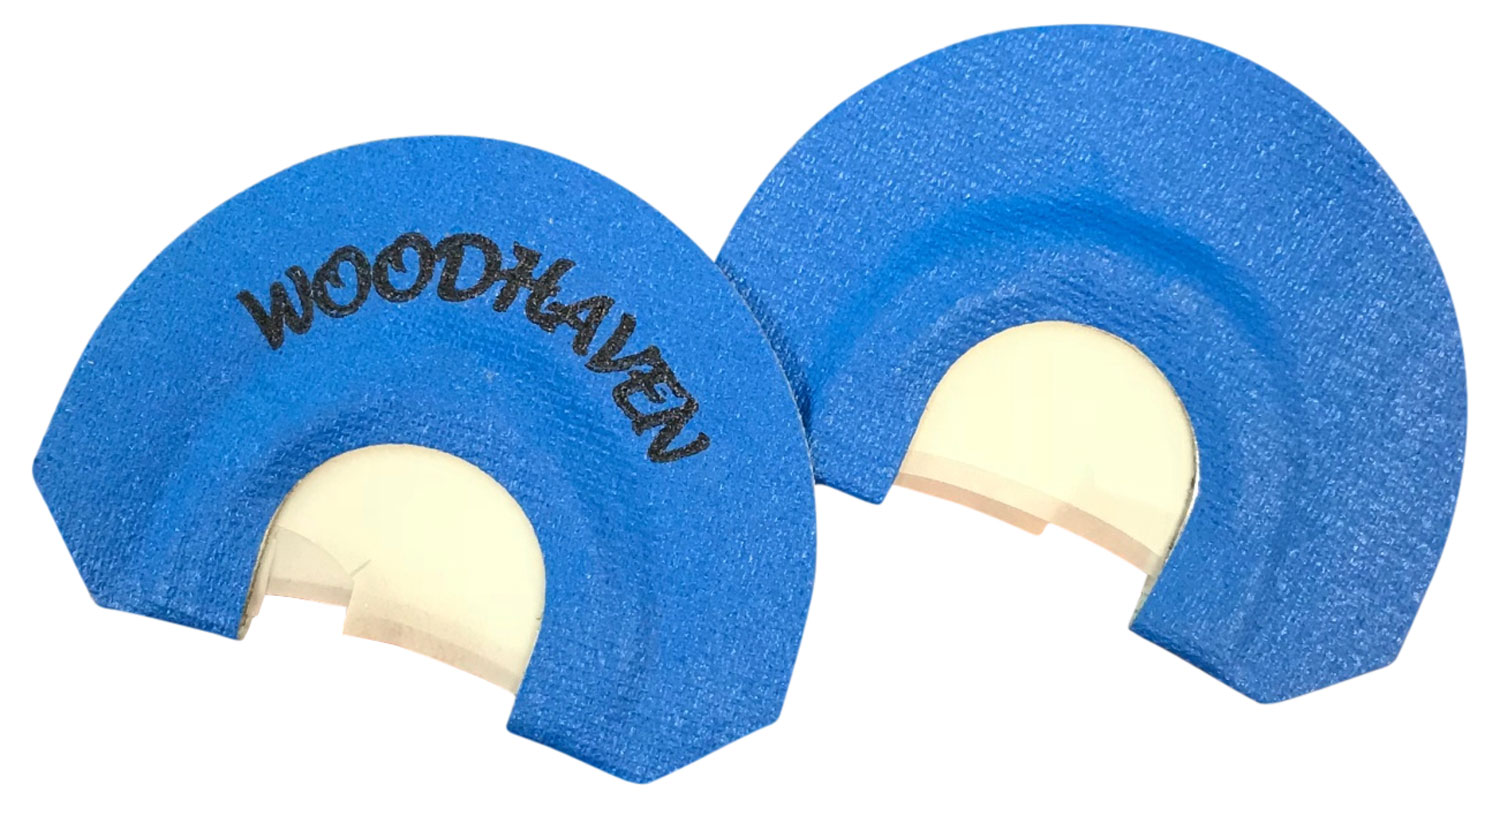 WOODHAVEN WH079 BLUE CUTTER